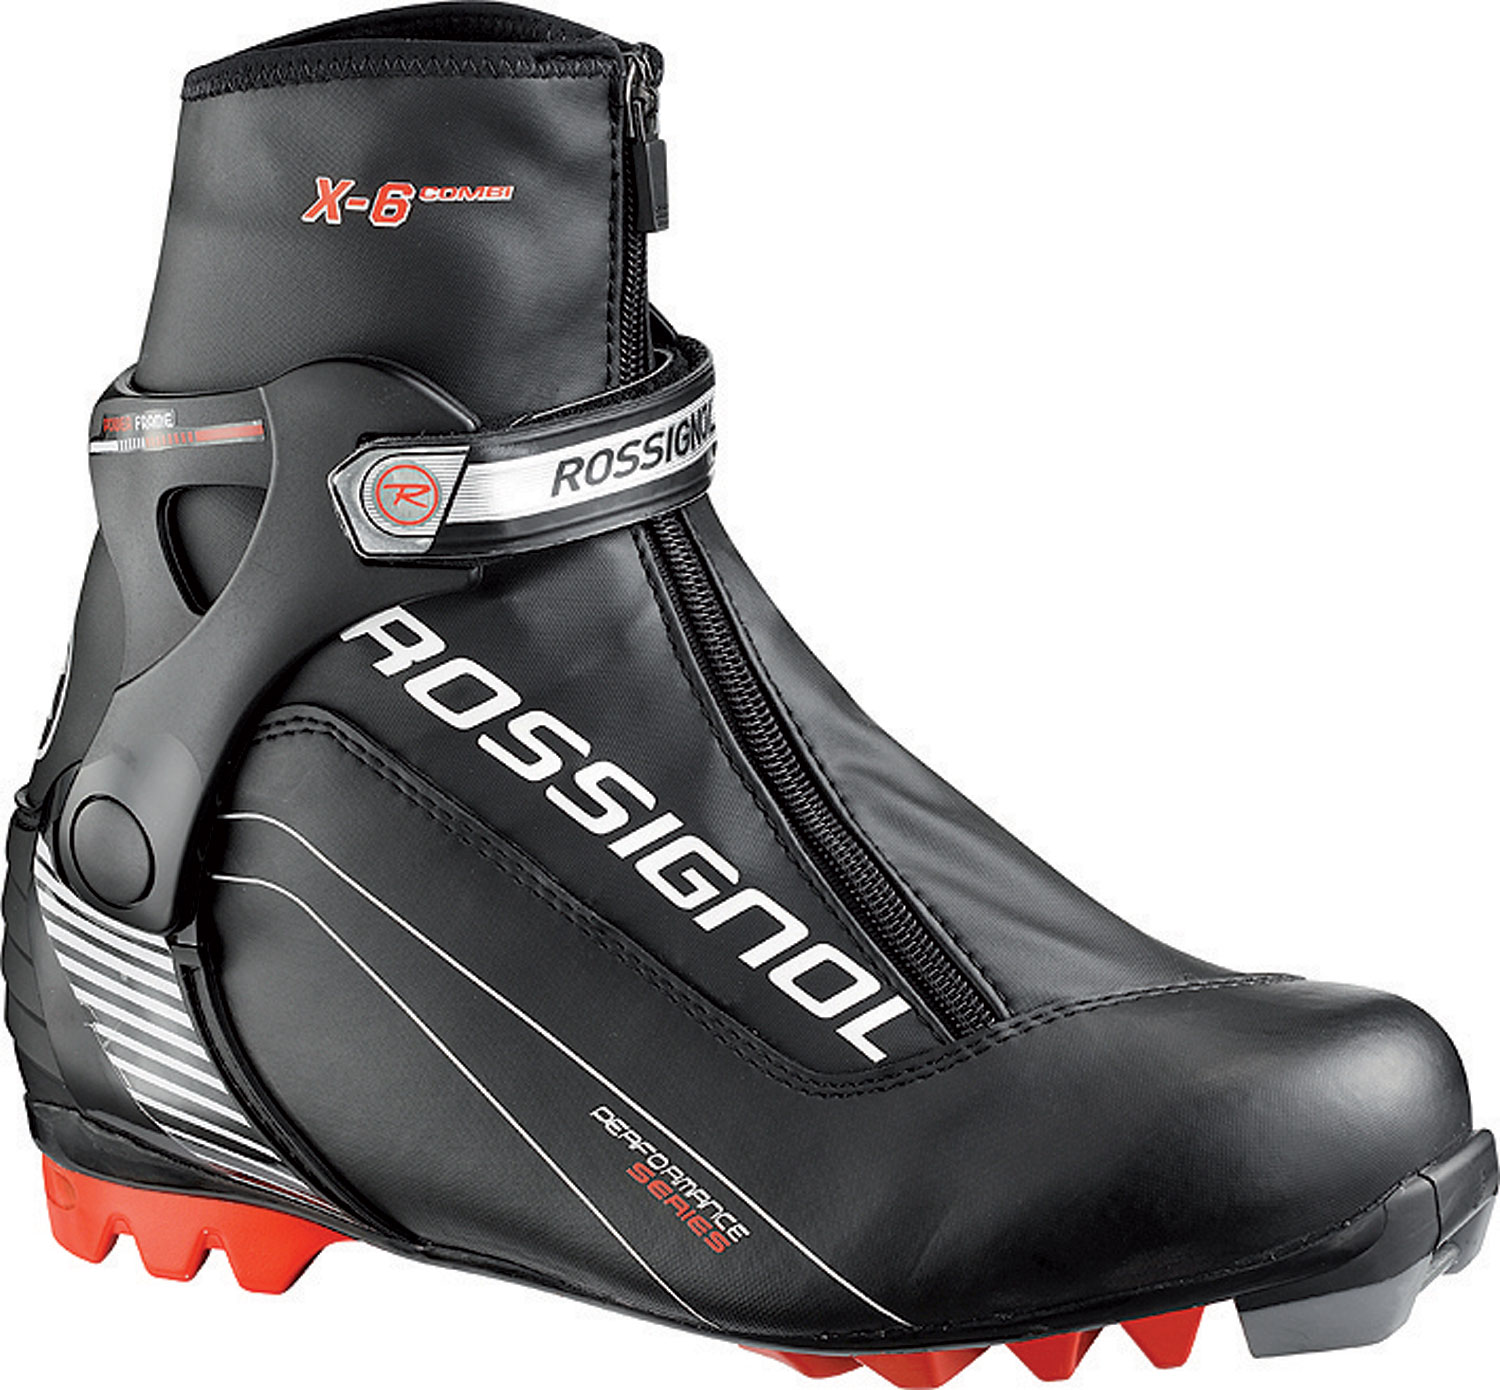 Ski Rossignol Race boots deliver comfortable, lightweight, high-performance  Skate and classic boots for elite World cup racers to high school athletes  to fitness-oriented, entry-level skiers. For 12-13, an all-new and dramatically  improved X-ium WC boots that are 30 to 50 grams lighter, and feature new,  more anatomically-shaped cuffs, better fit, and low-profile, lightweight  soles!Key Features of the Rossignol X6 Combi Cross Country Ski Boots:   Sole : T4   Liner : Thermo Fit   Polyester - $93.95